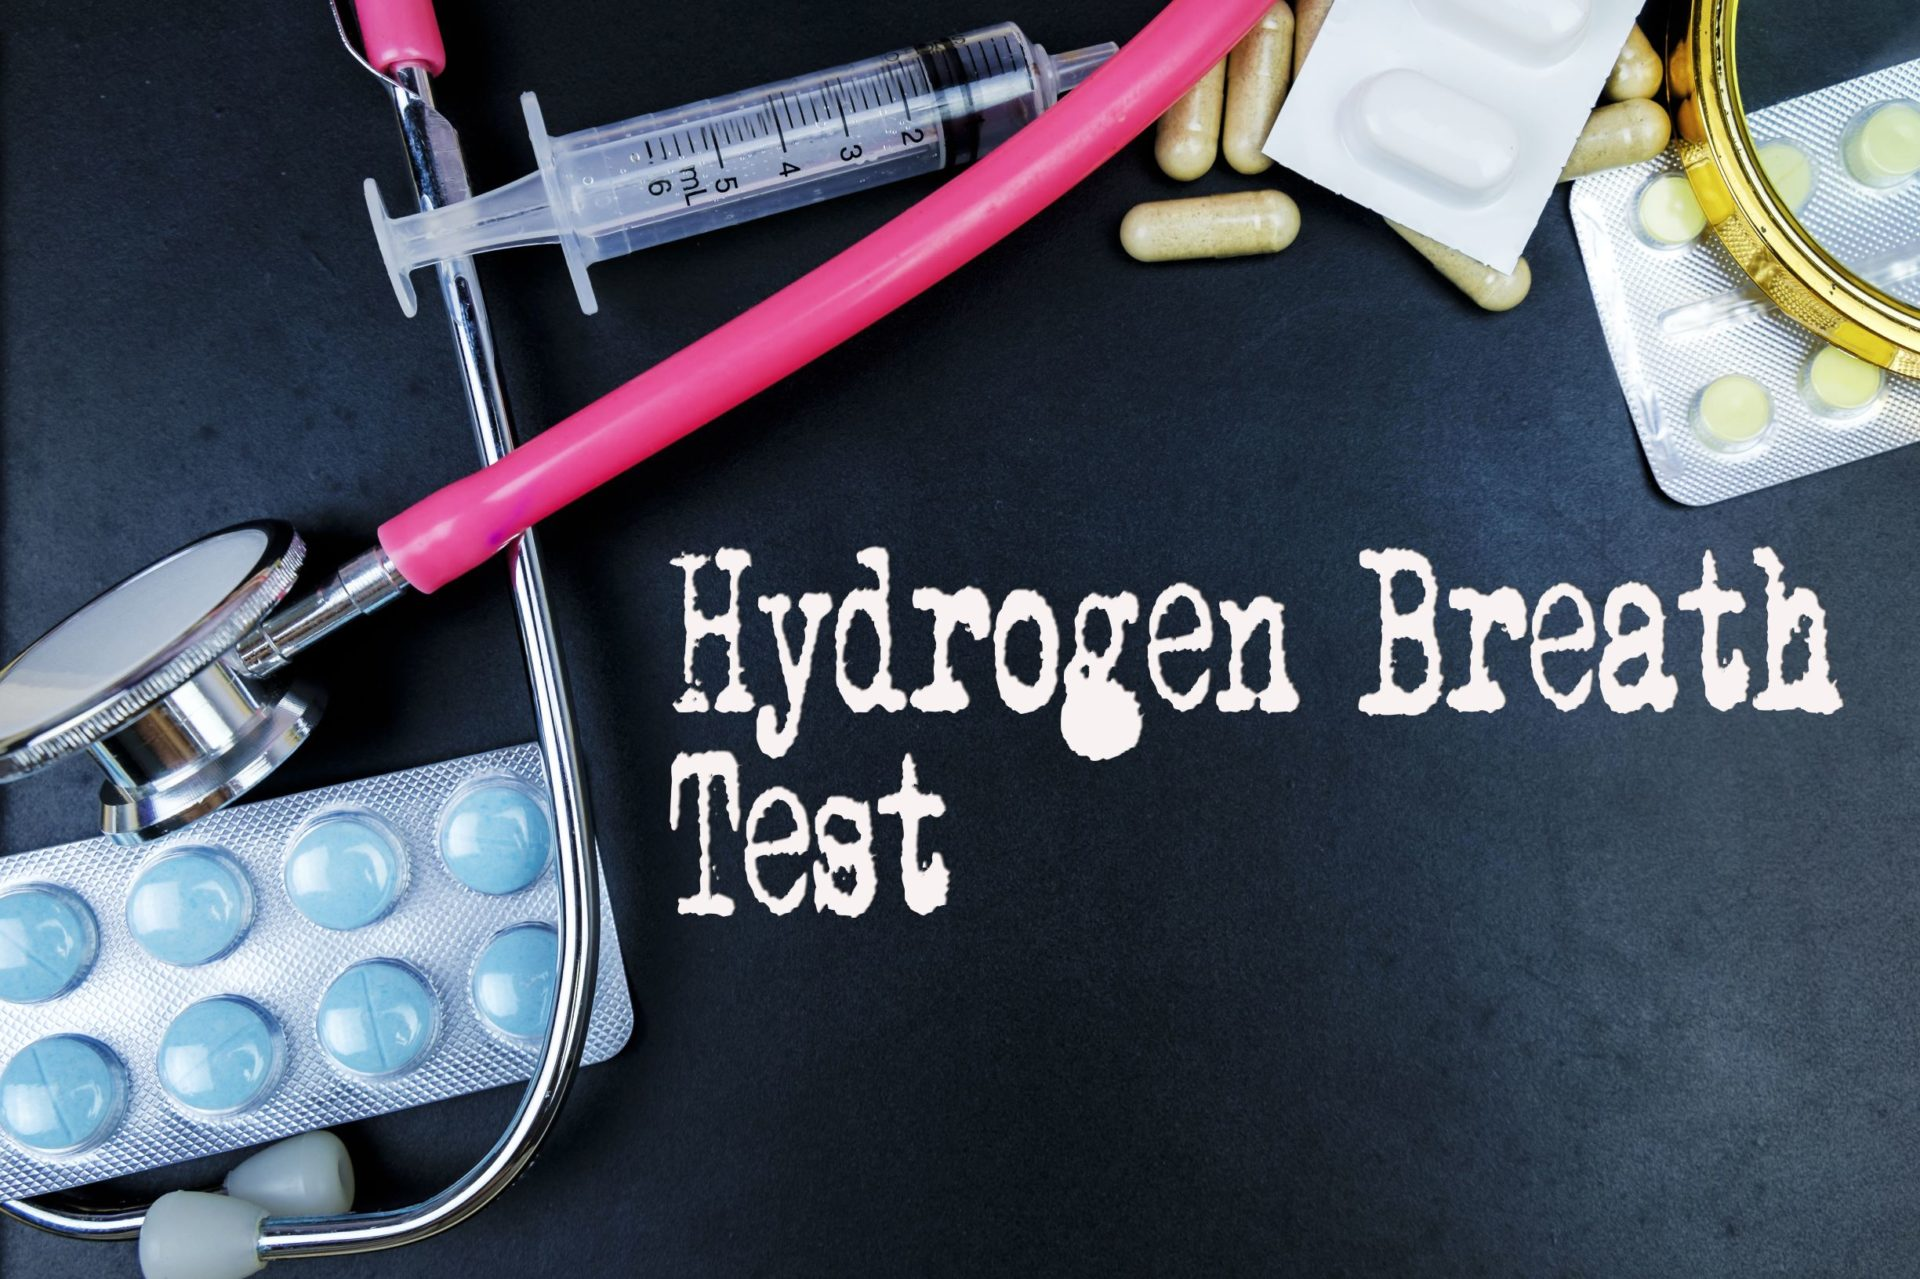 Hydrogen breath test/ lactose breath test